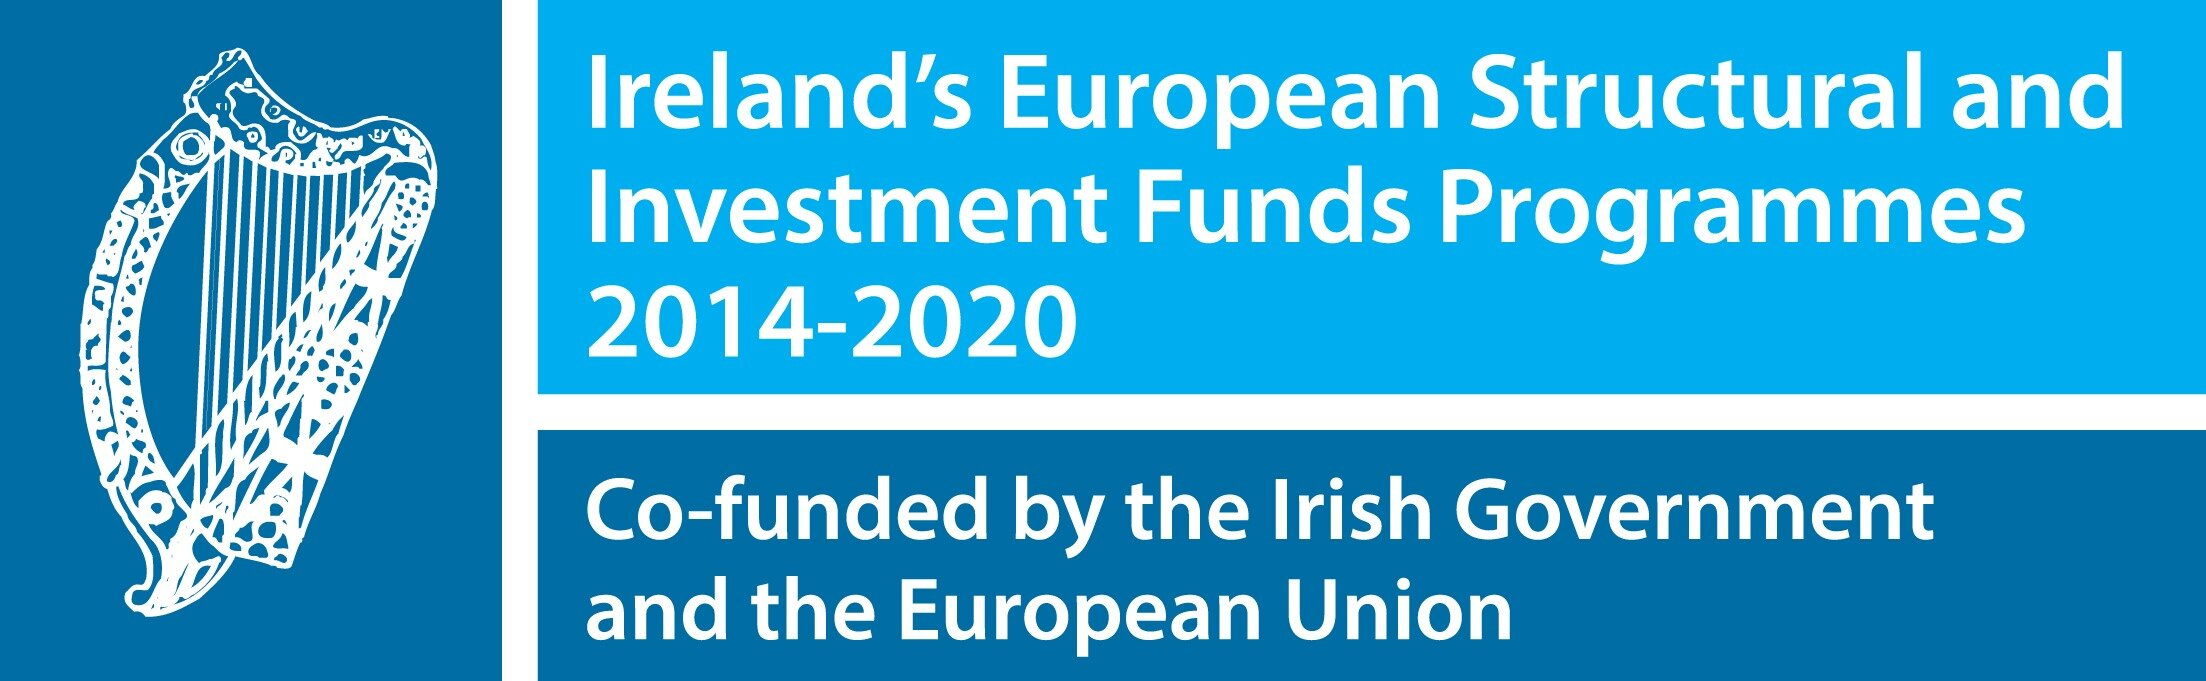 european-structural-and-investment-funds-logo.jpg